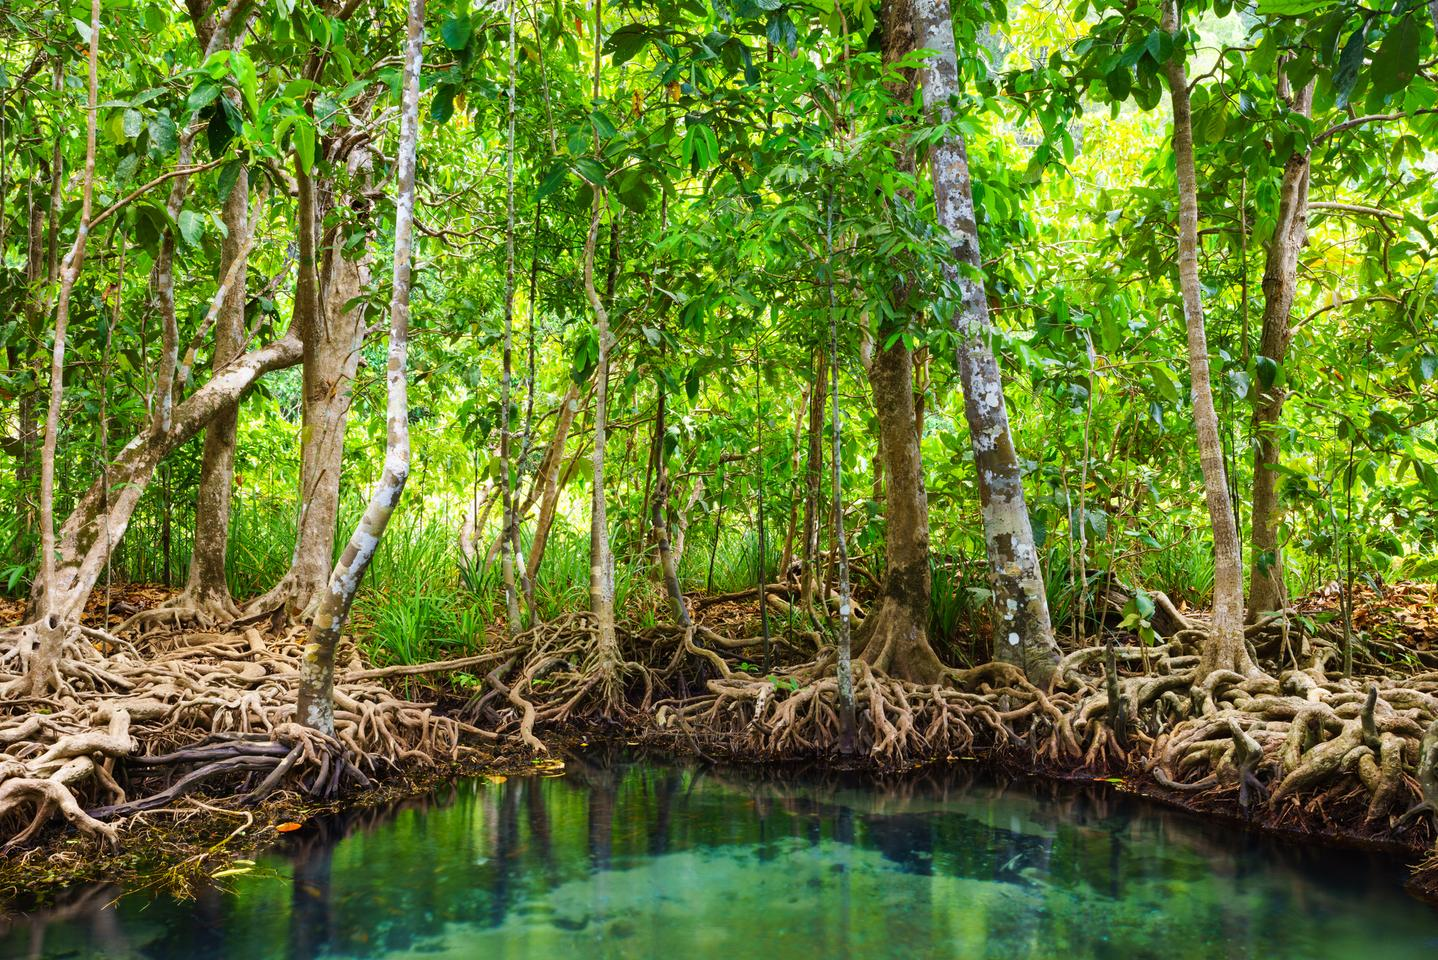 Engineers have created a new solar still for water purification, inspired by the water transport process of mangrove roots